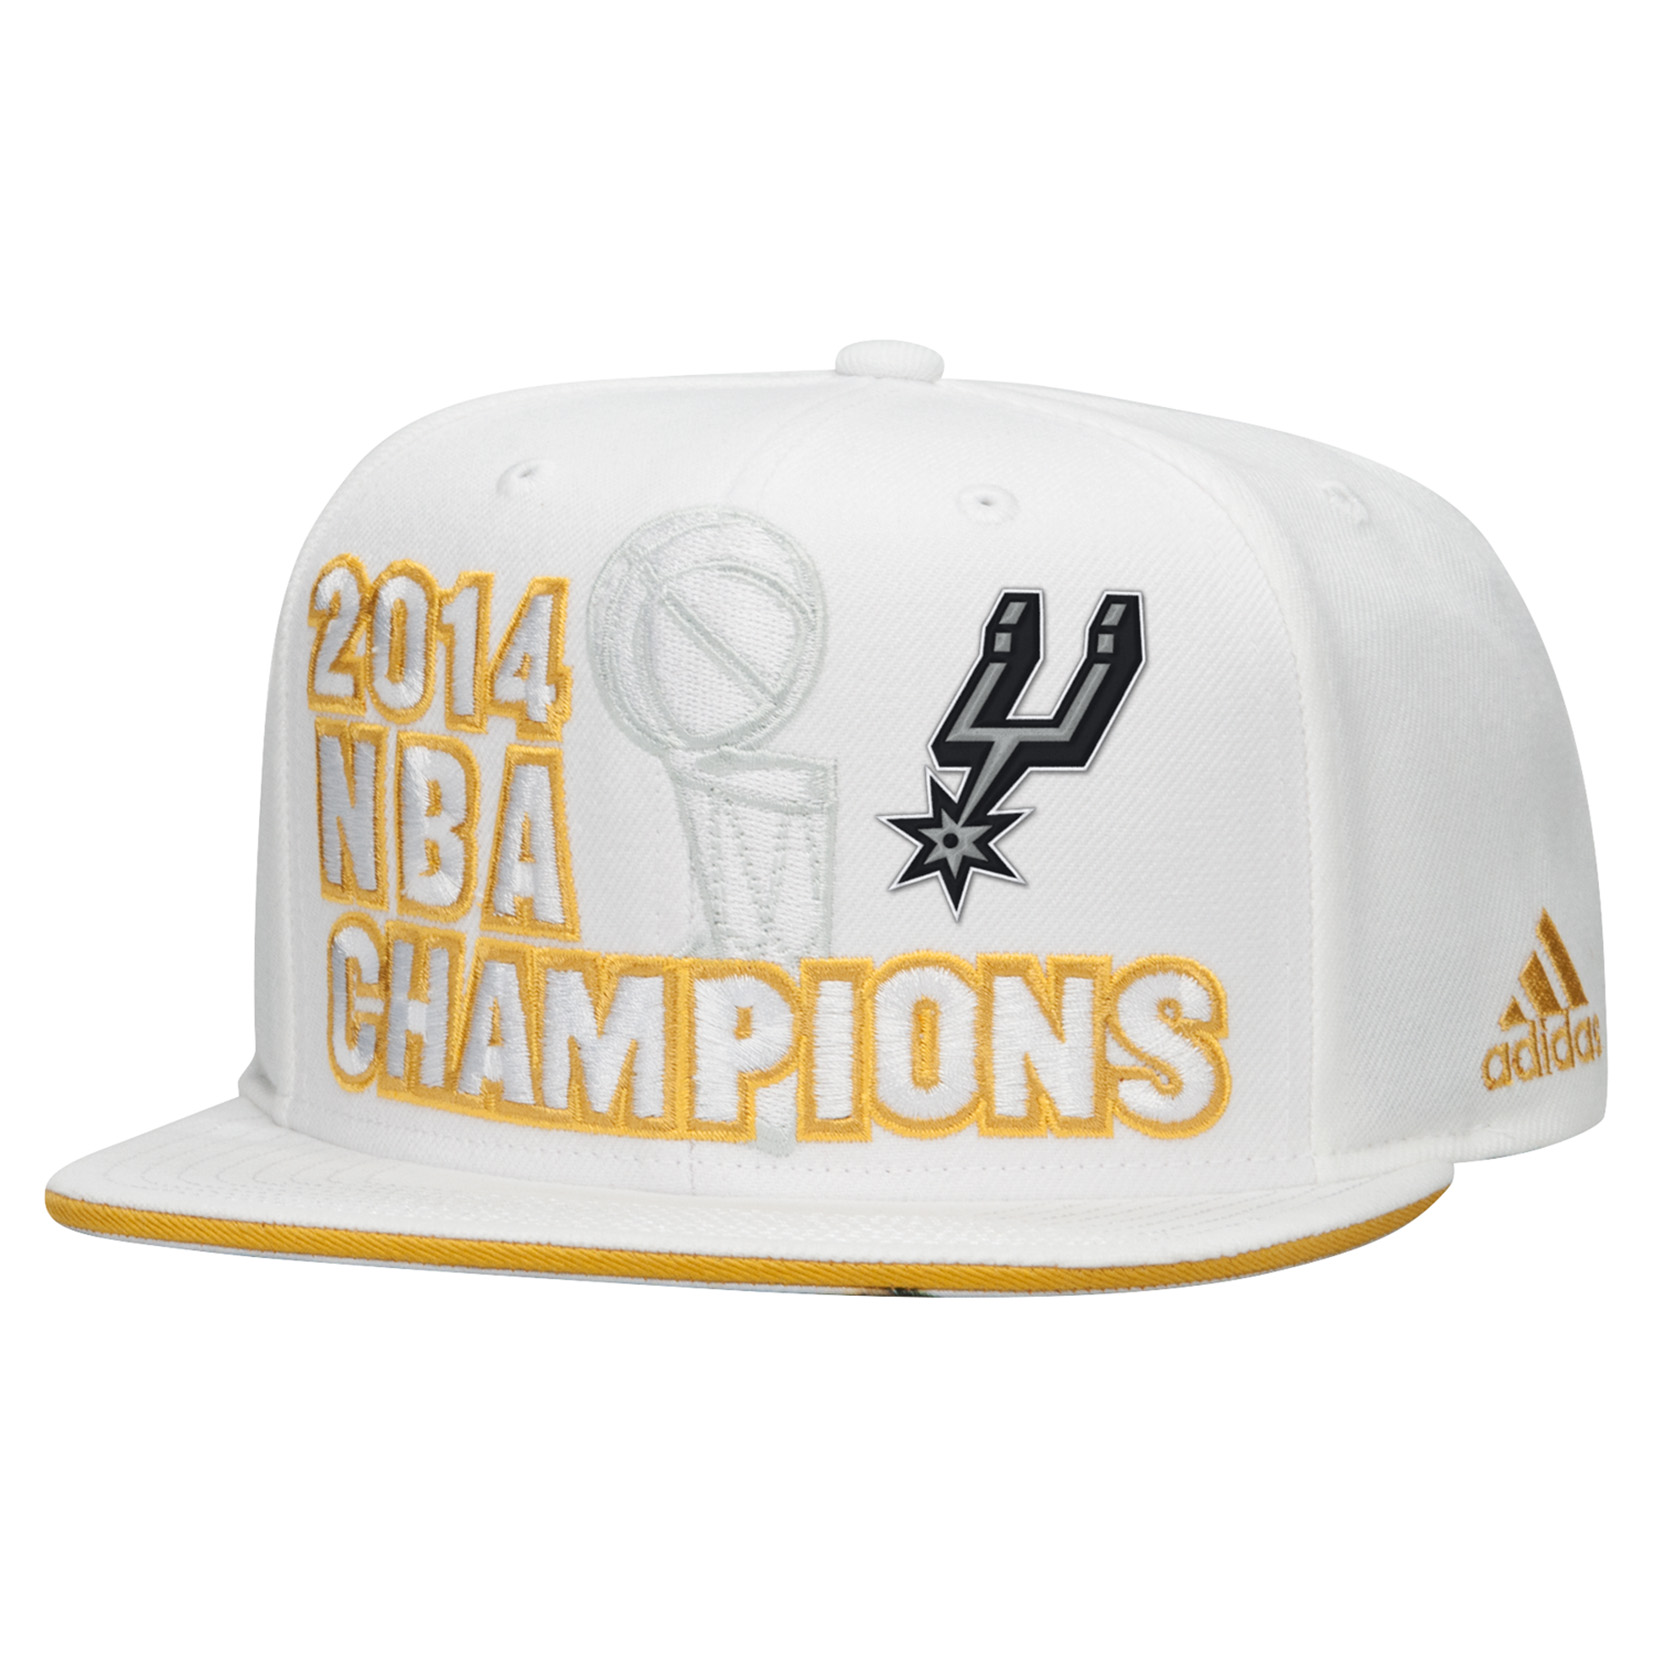 San Antonio Spurs NBA Champions Official Lockeroom Cap